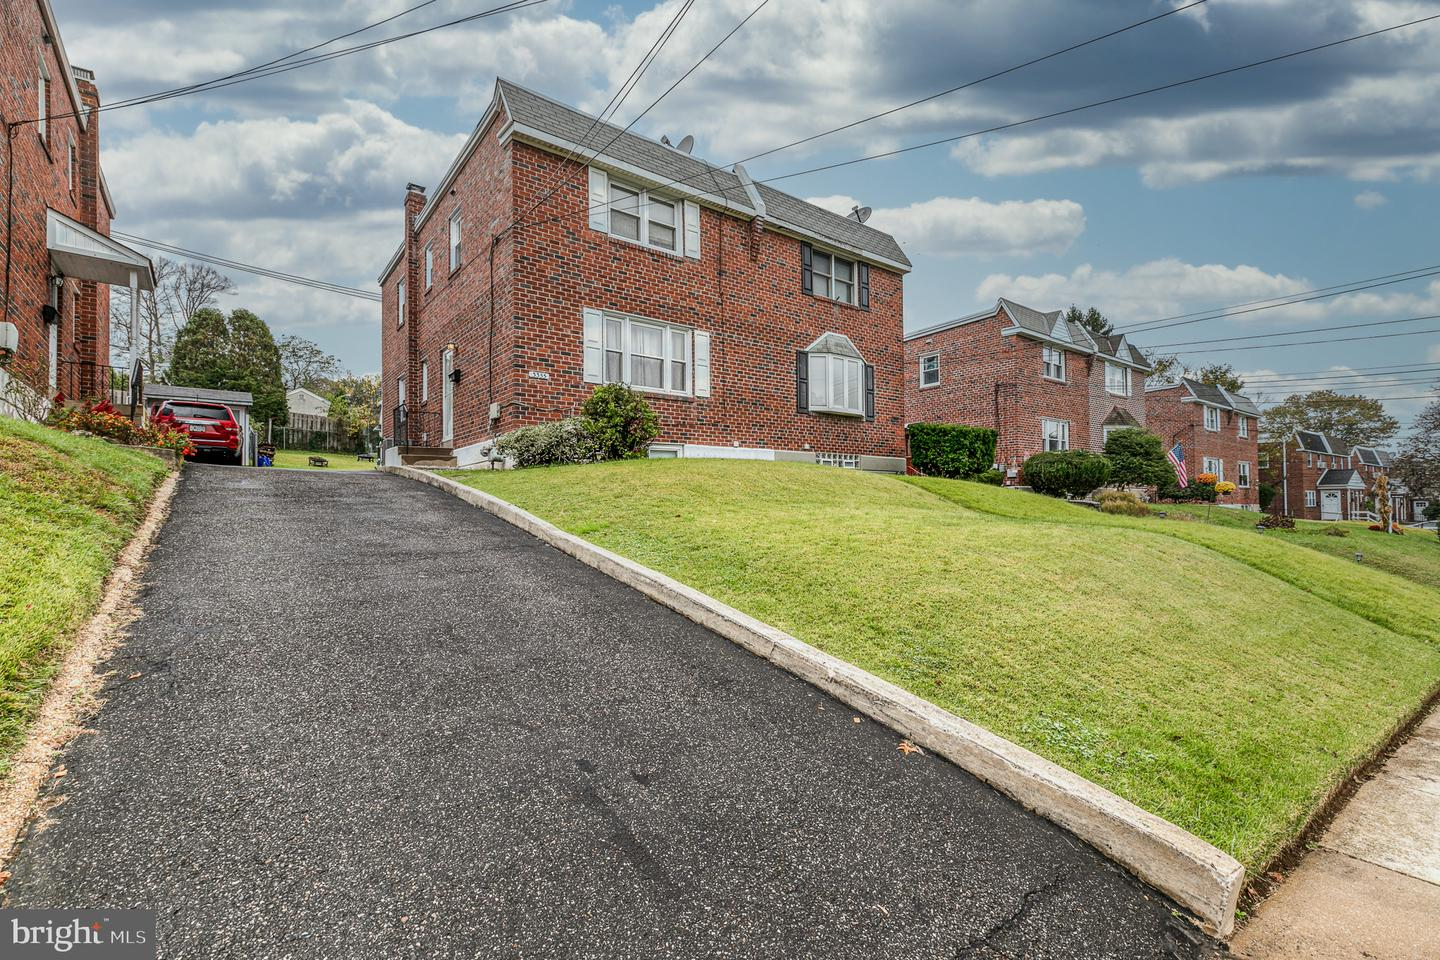 3355 Mary, Drexel Hill PA